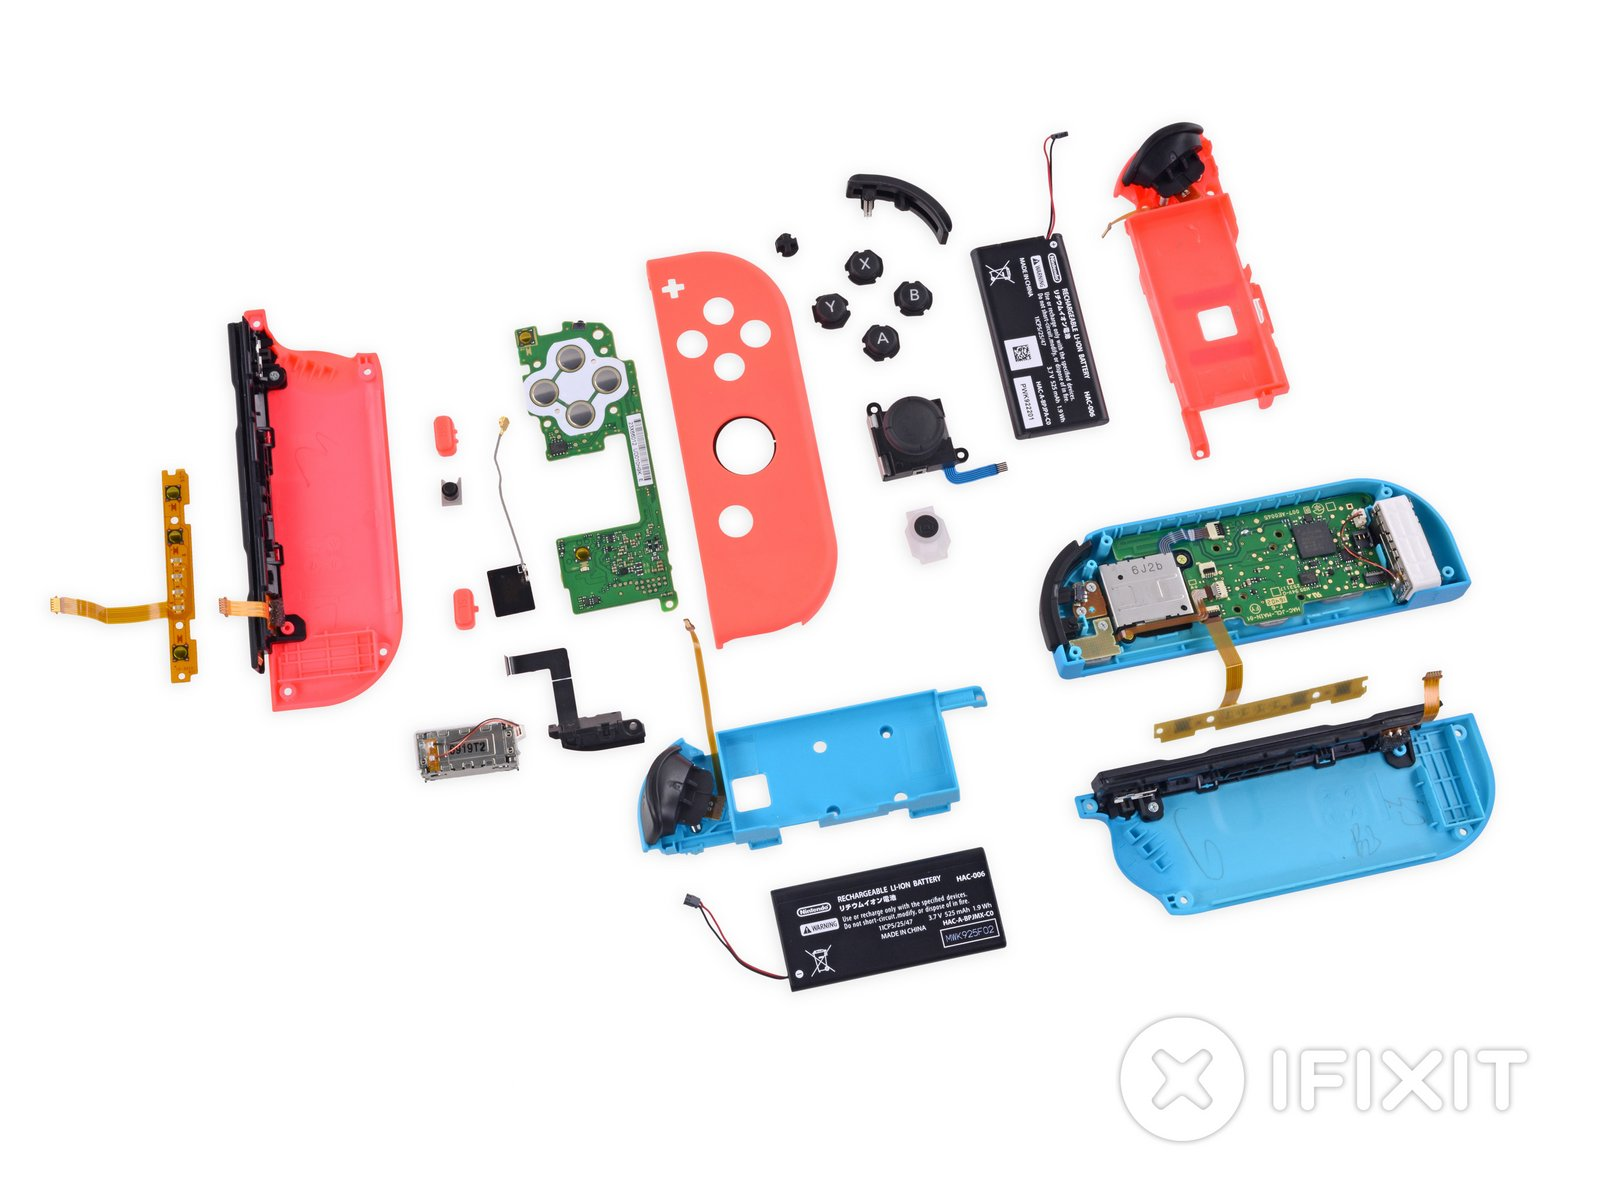 Nintendo Switch Teardown Ifixit Australia Silicon Chip Online House Wiring Looking At Light Switches